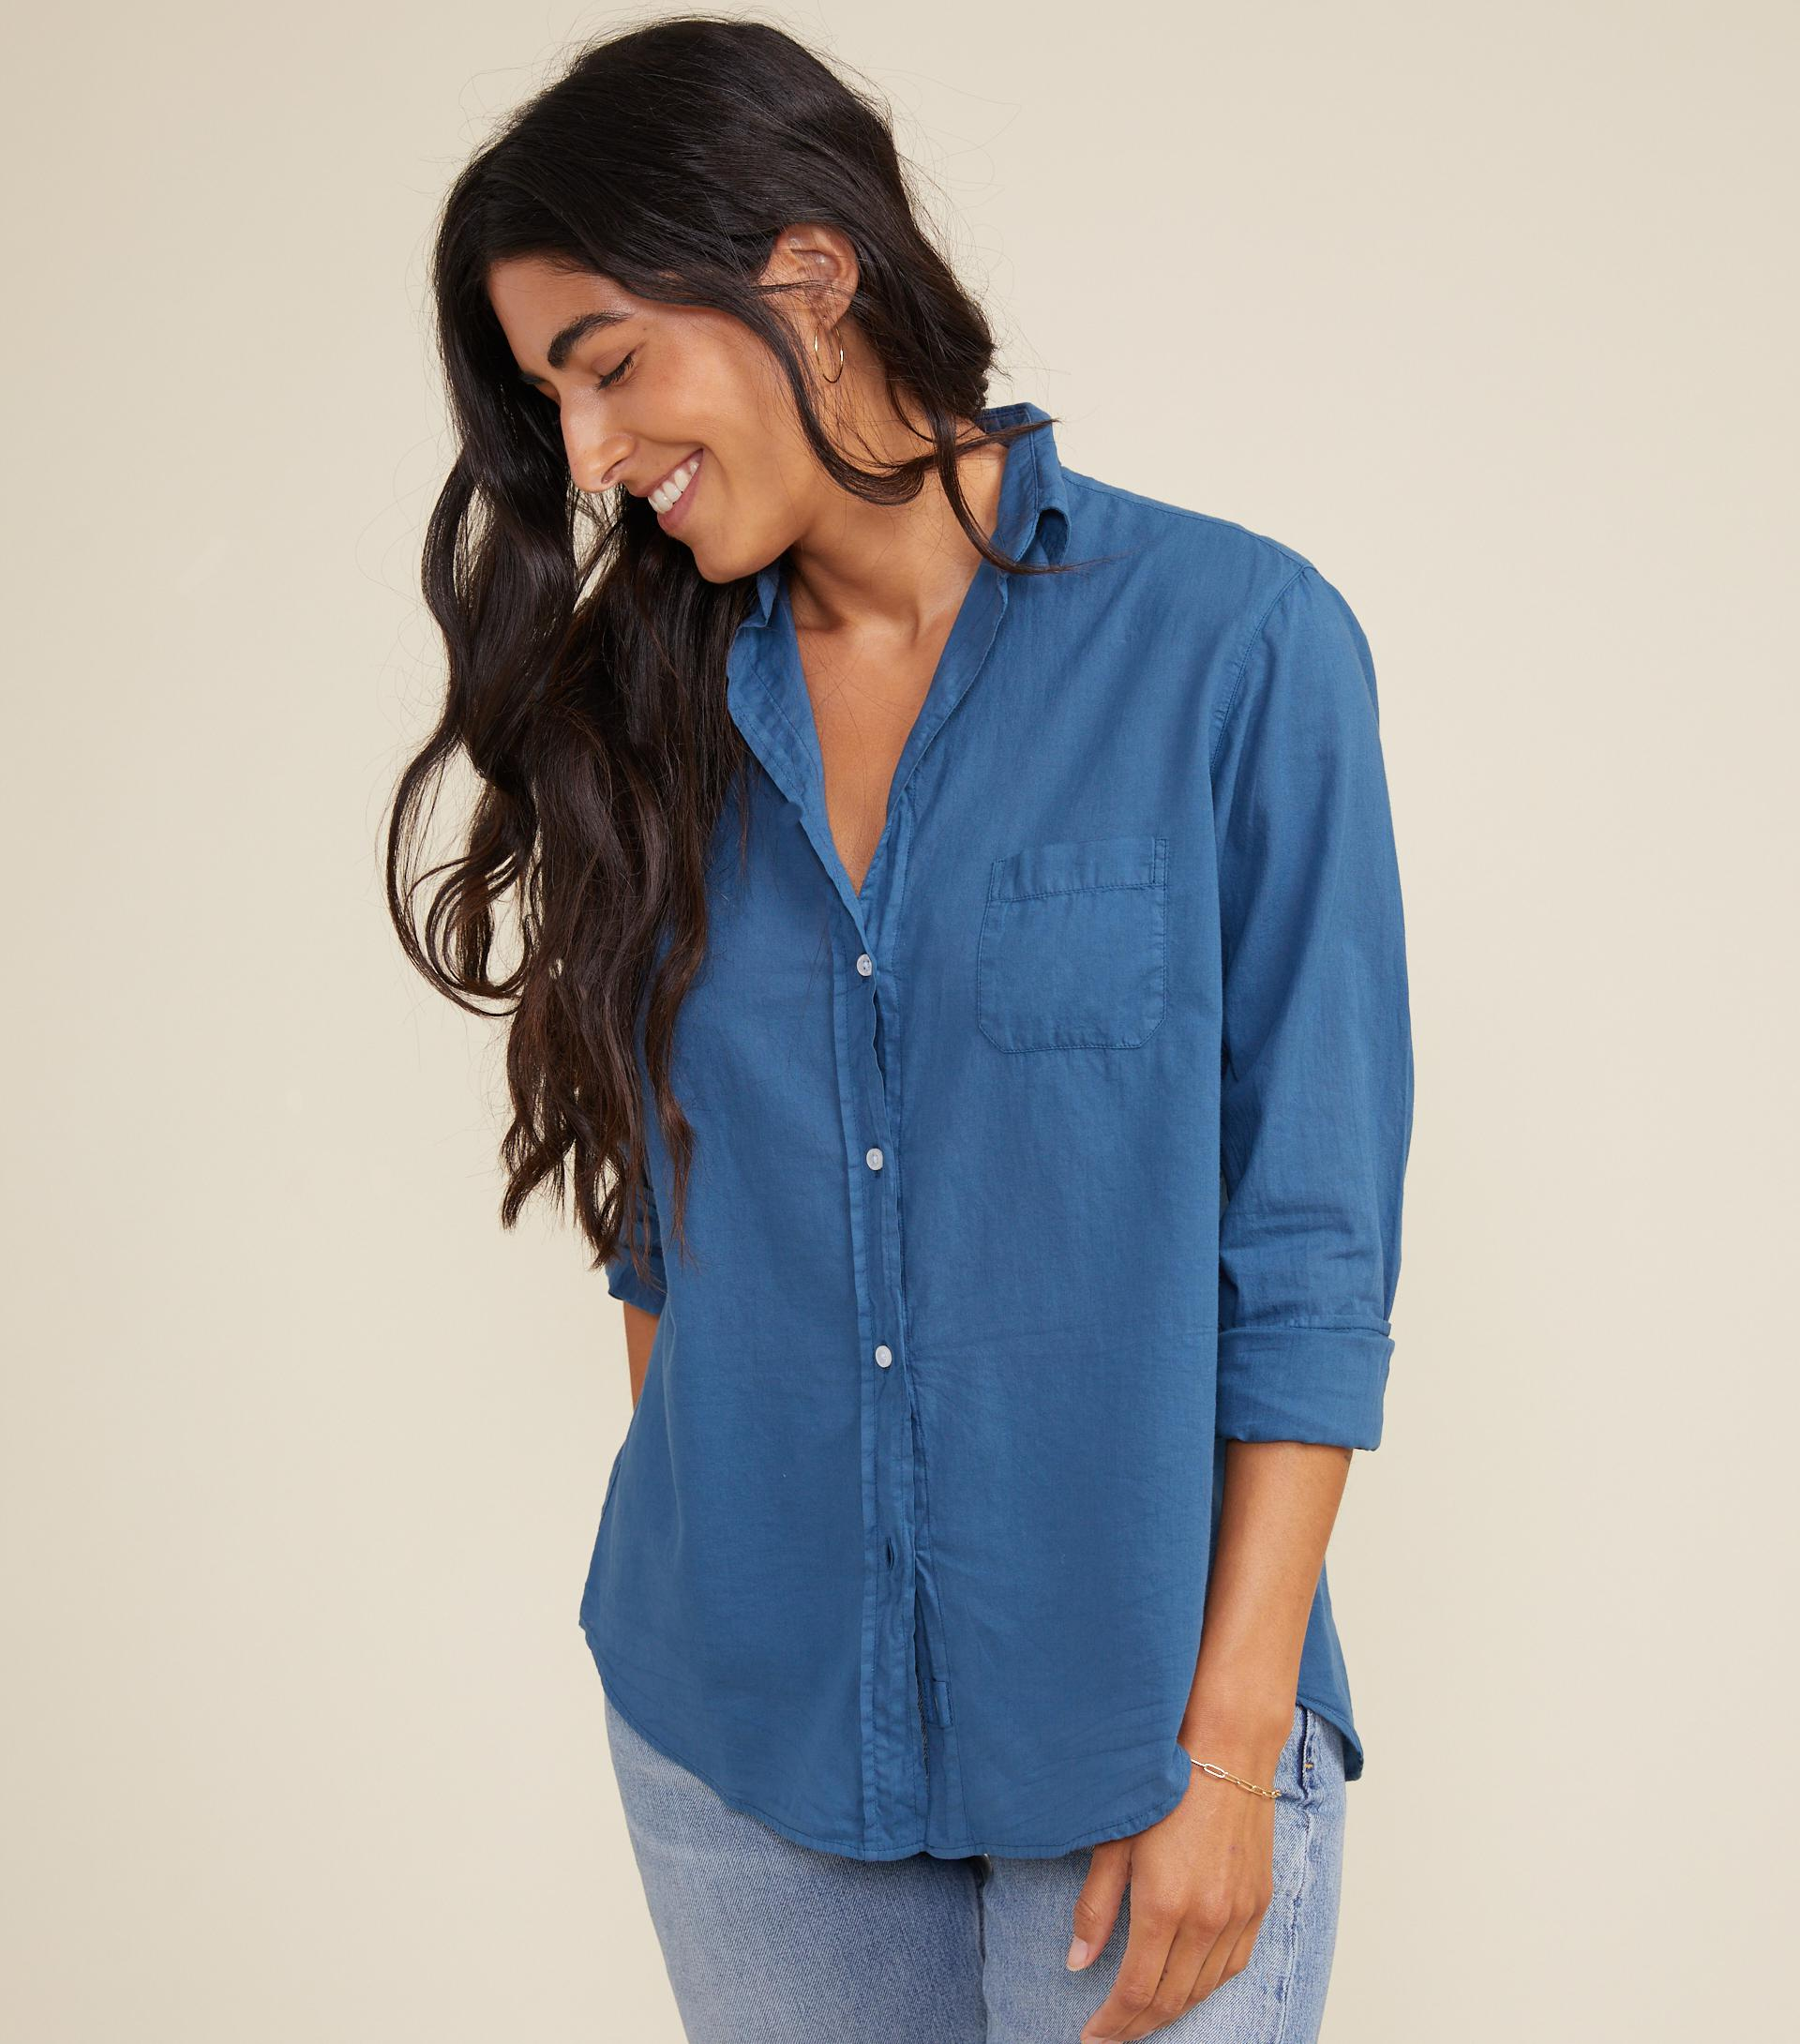 The Hero Button-Up Shirt Teal Blue, Tissue Cotton